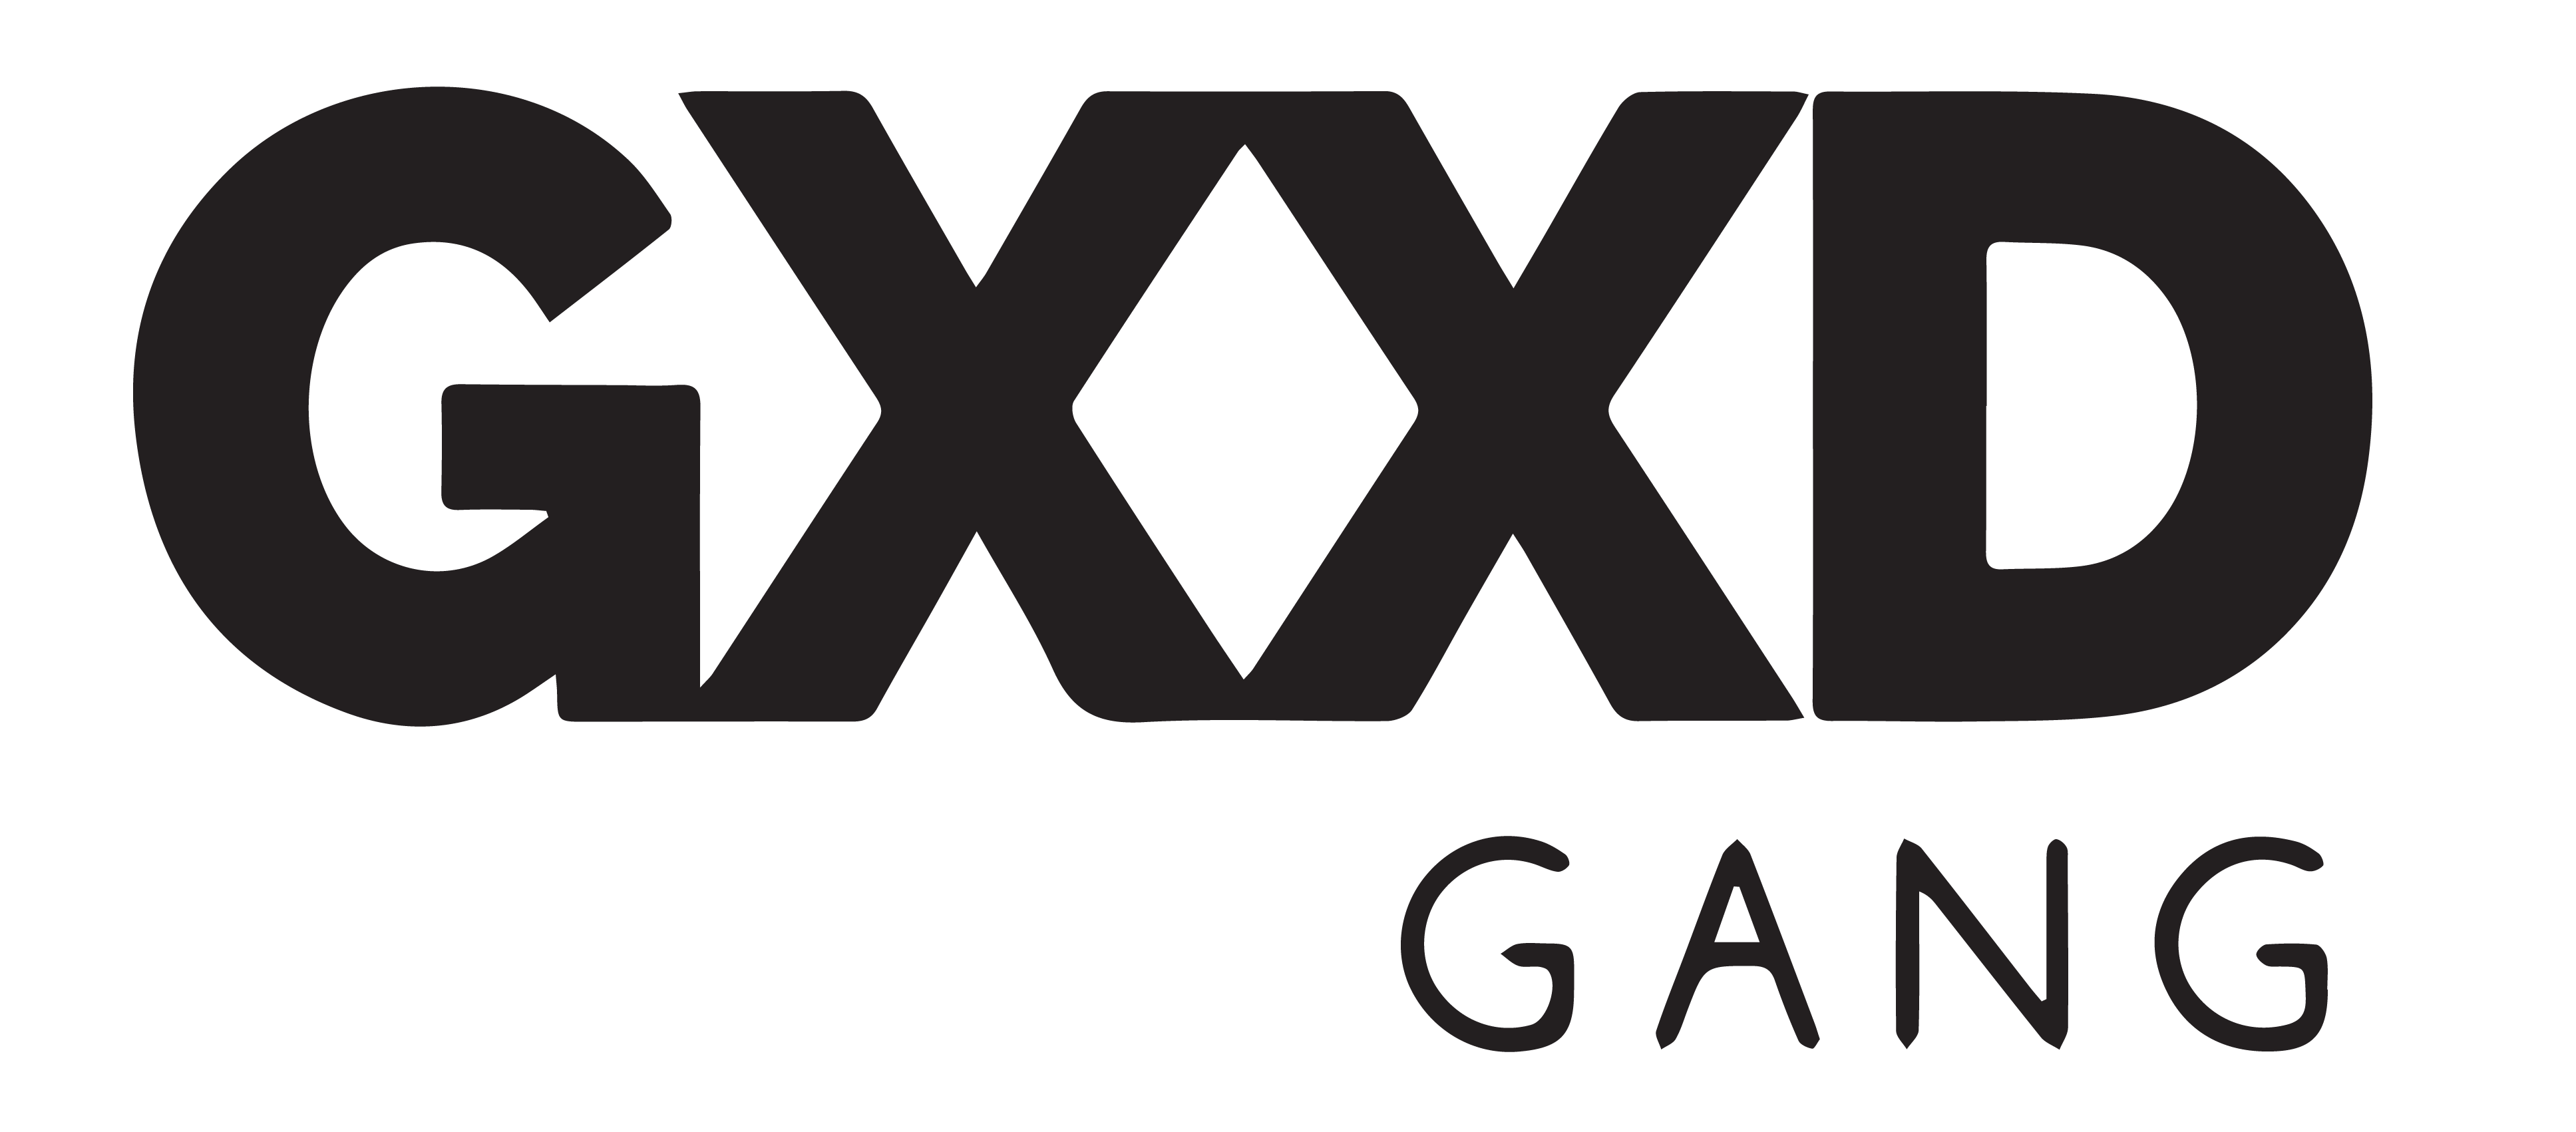 gxxd gang text logo